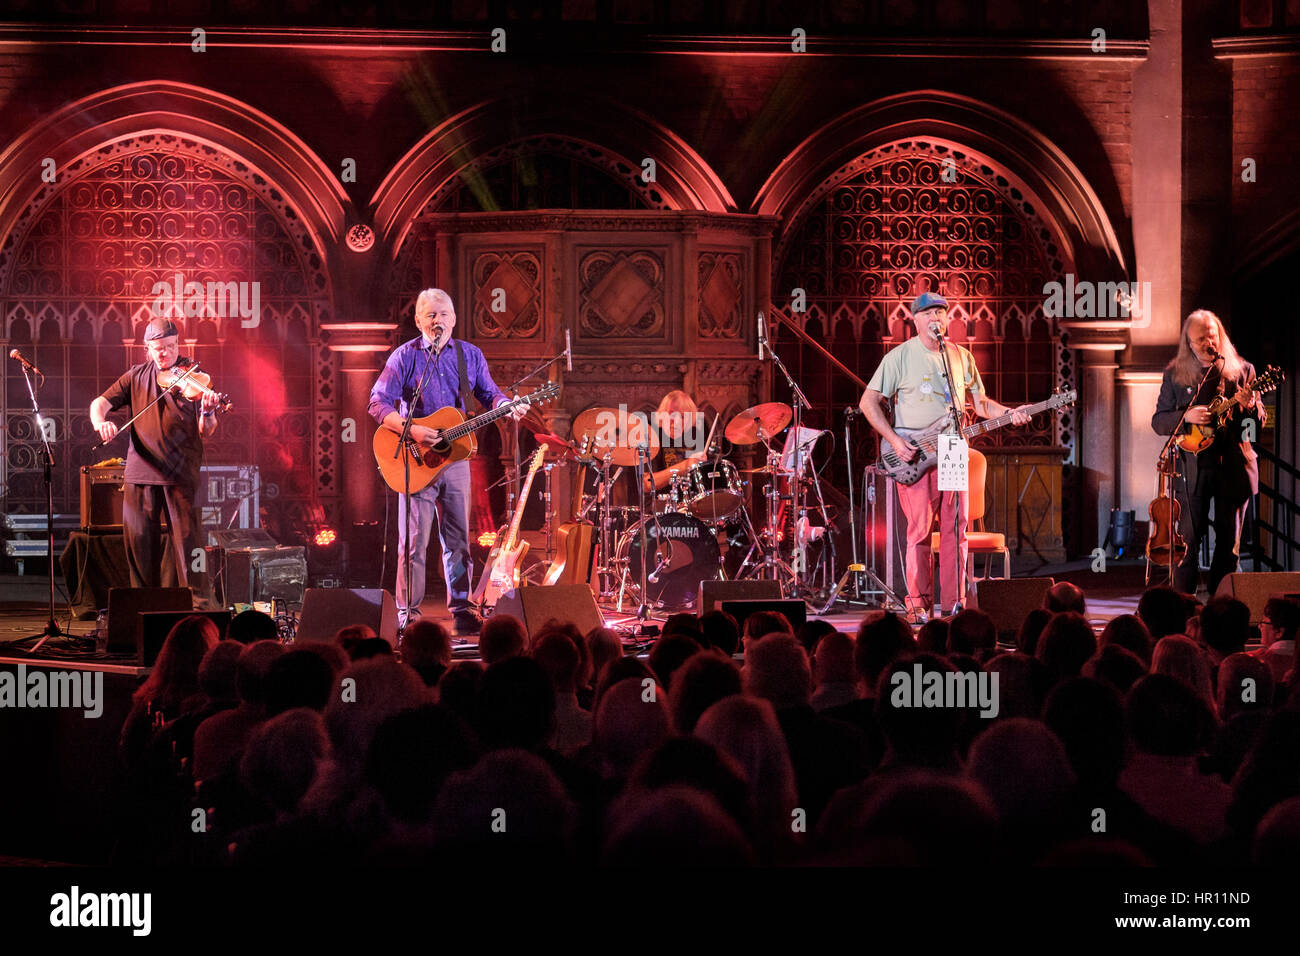 London, UK. 25th Feb, 2017. Fairport Convention performing at the Union Chapel during their 50th Birthday Party - Stock Image